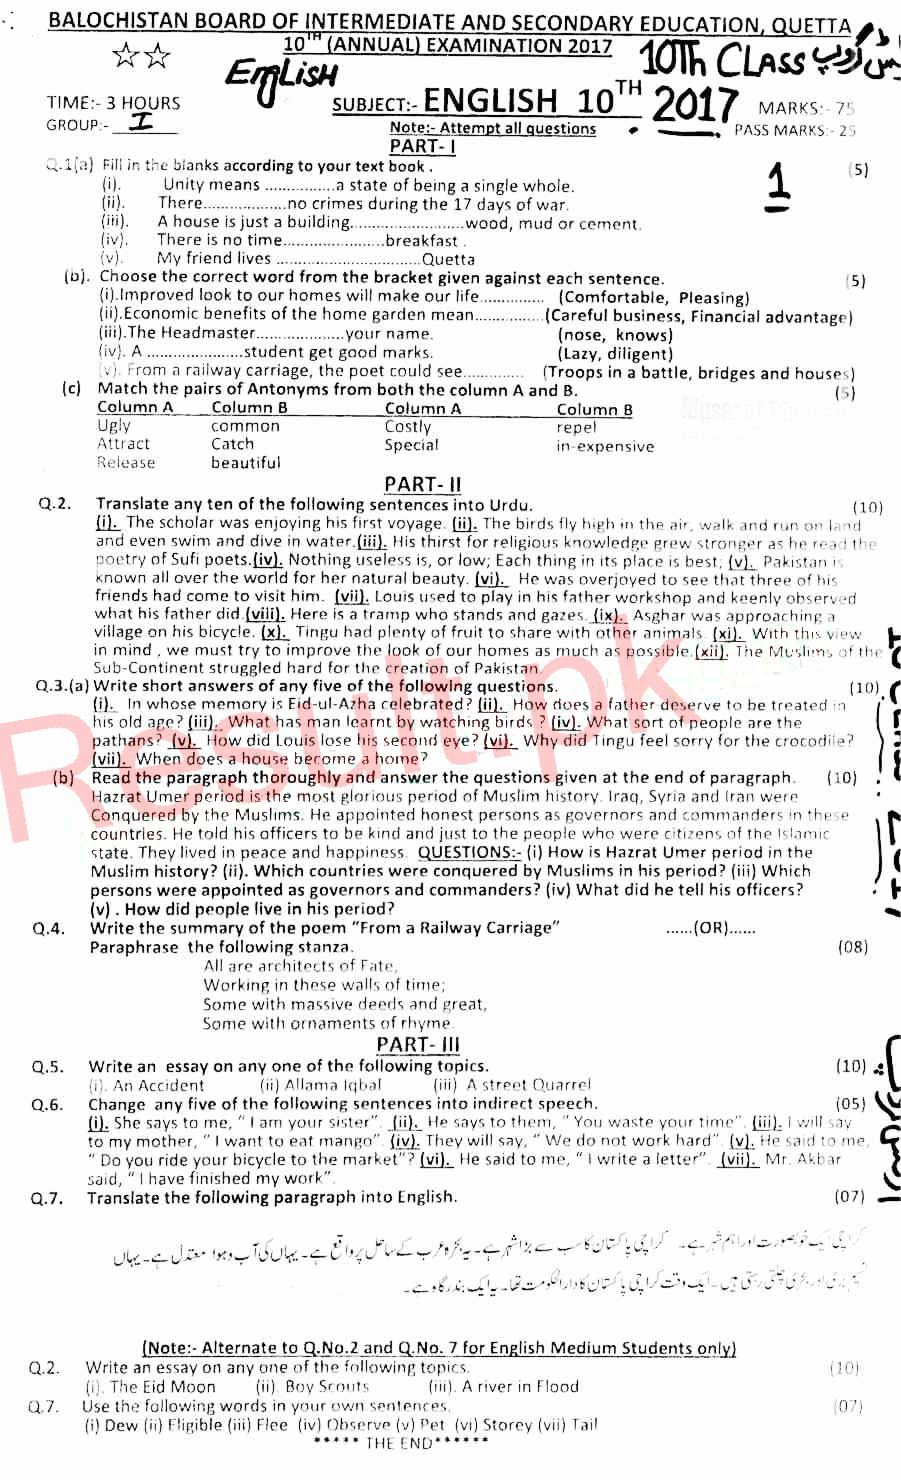 BISE Quetta Board Past Papers 2019 Matric, SSC Part 1 & 2